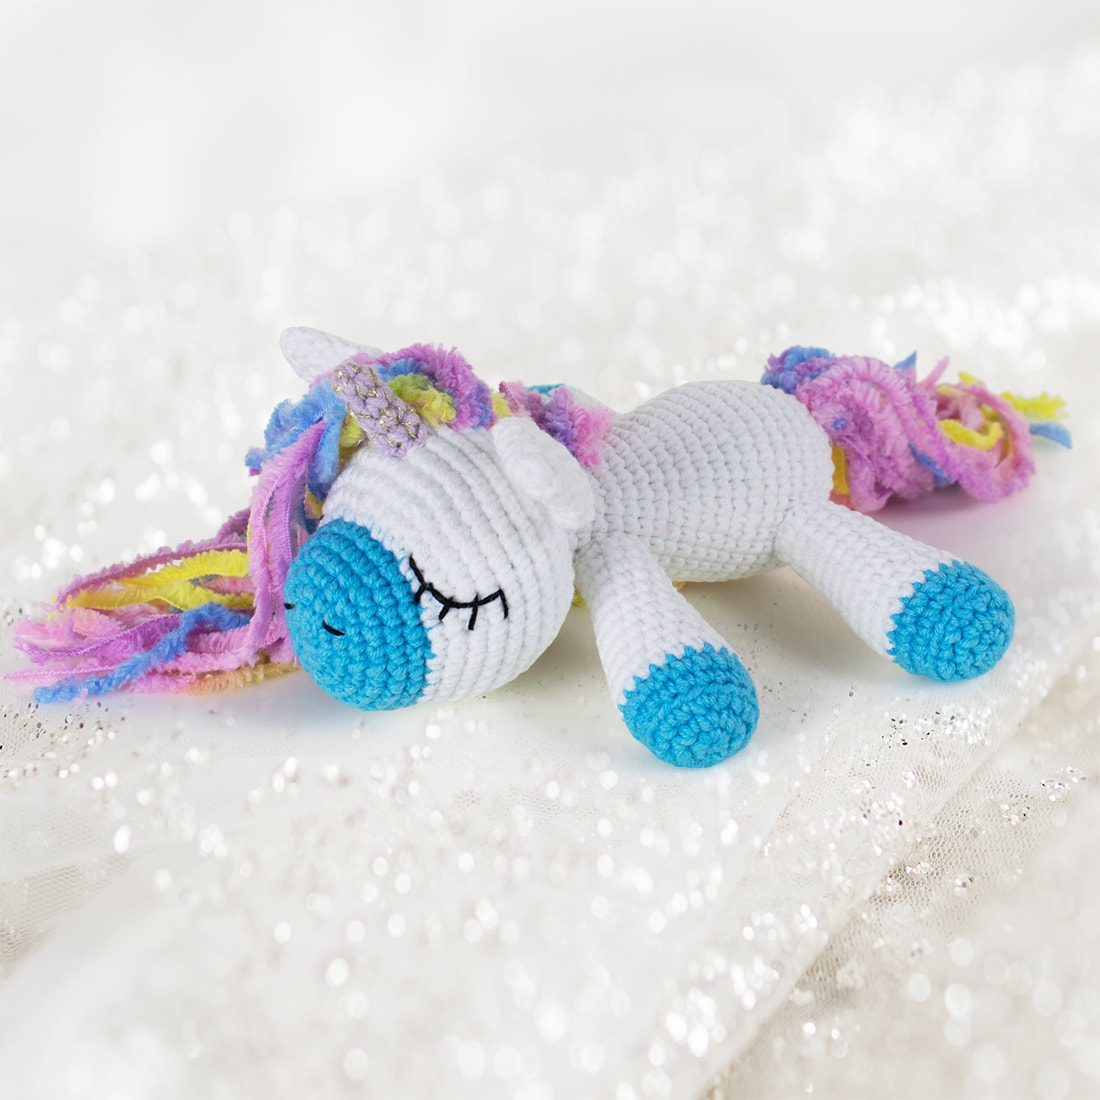 Free Crochet Unicorn Pattern - Red Ted Art - Make crafting with ... | 1100x1100